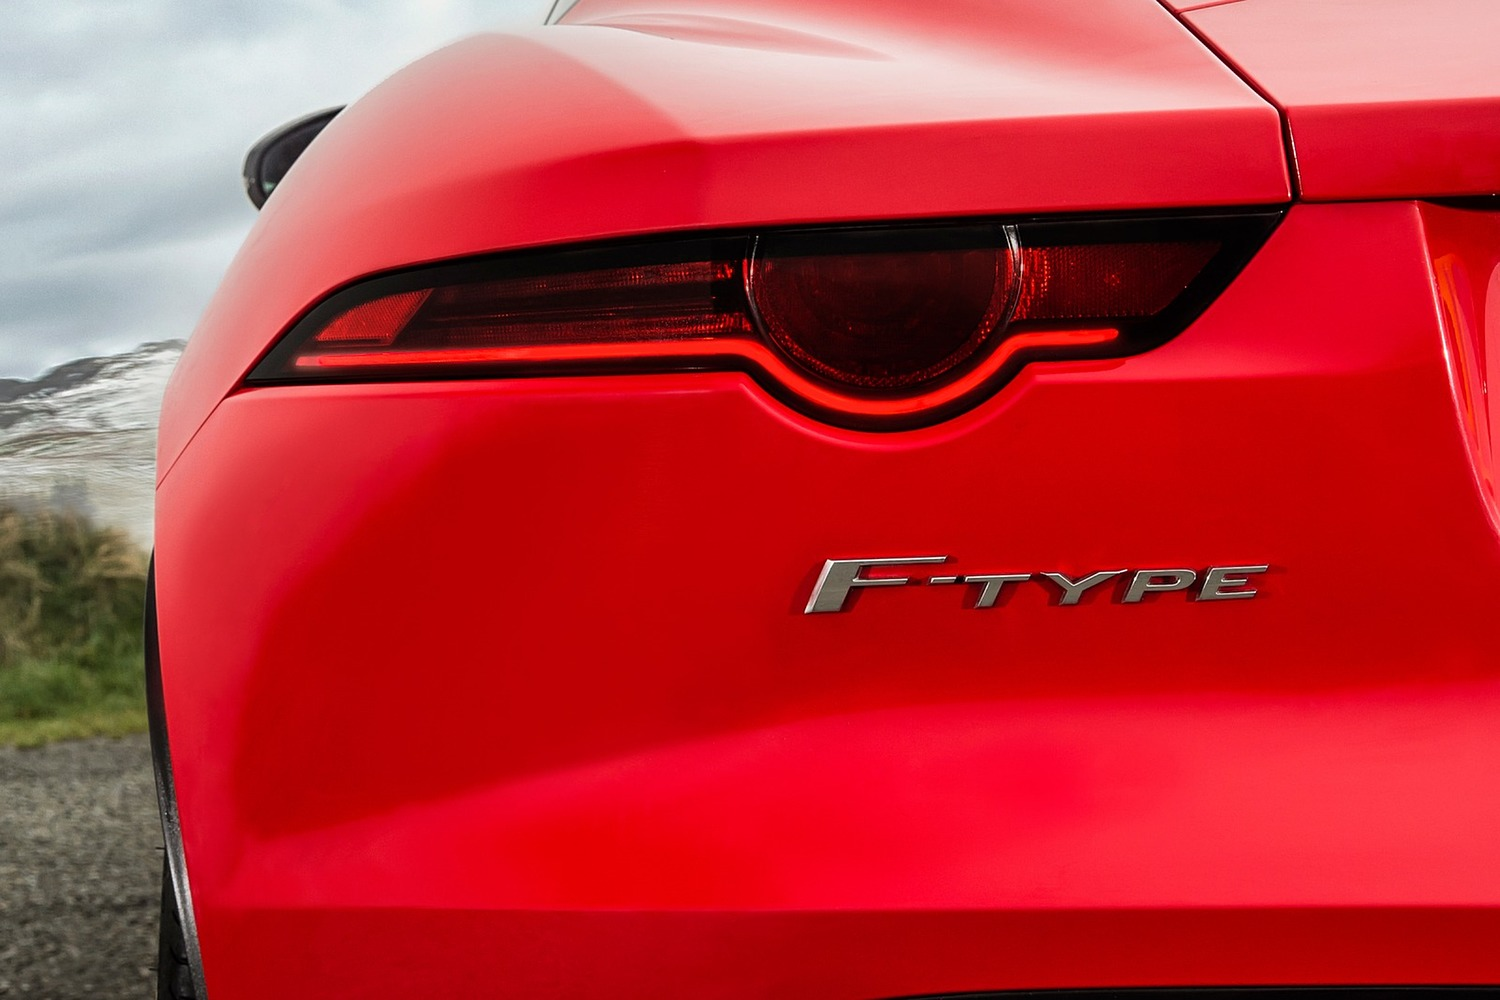 2018 Jaguar F-TYPE Coupe Rear Badge